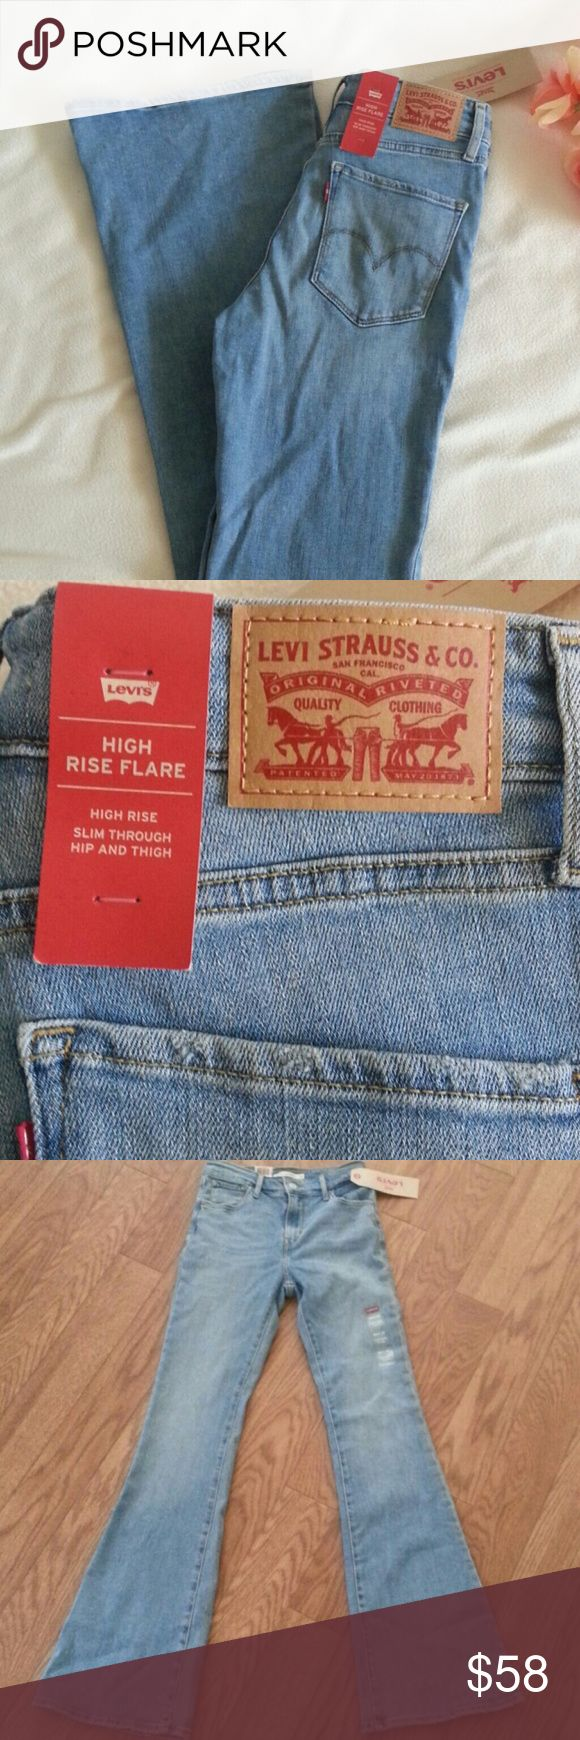 SALE NWT Levi's High Rise Flare Jeans Brand new with tag I have 26 x 32, 27x 32, 29 x 32 All brand new Retail $59.50 Levi's Jeans Flare & Wide Leg